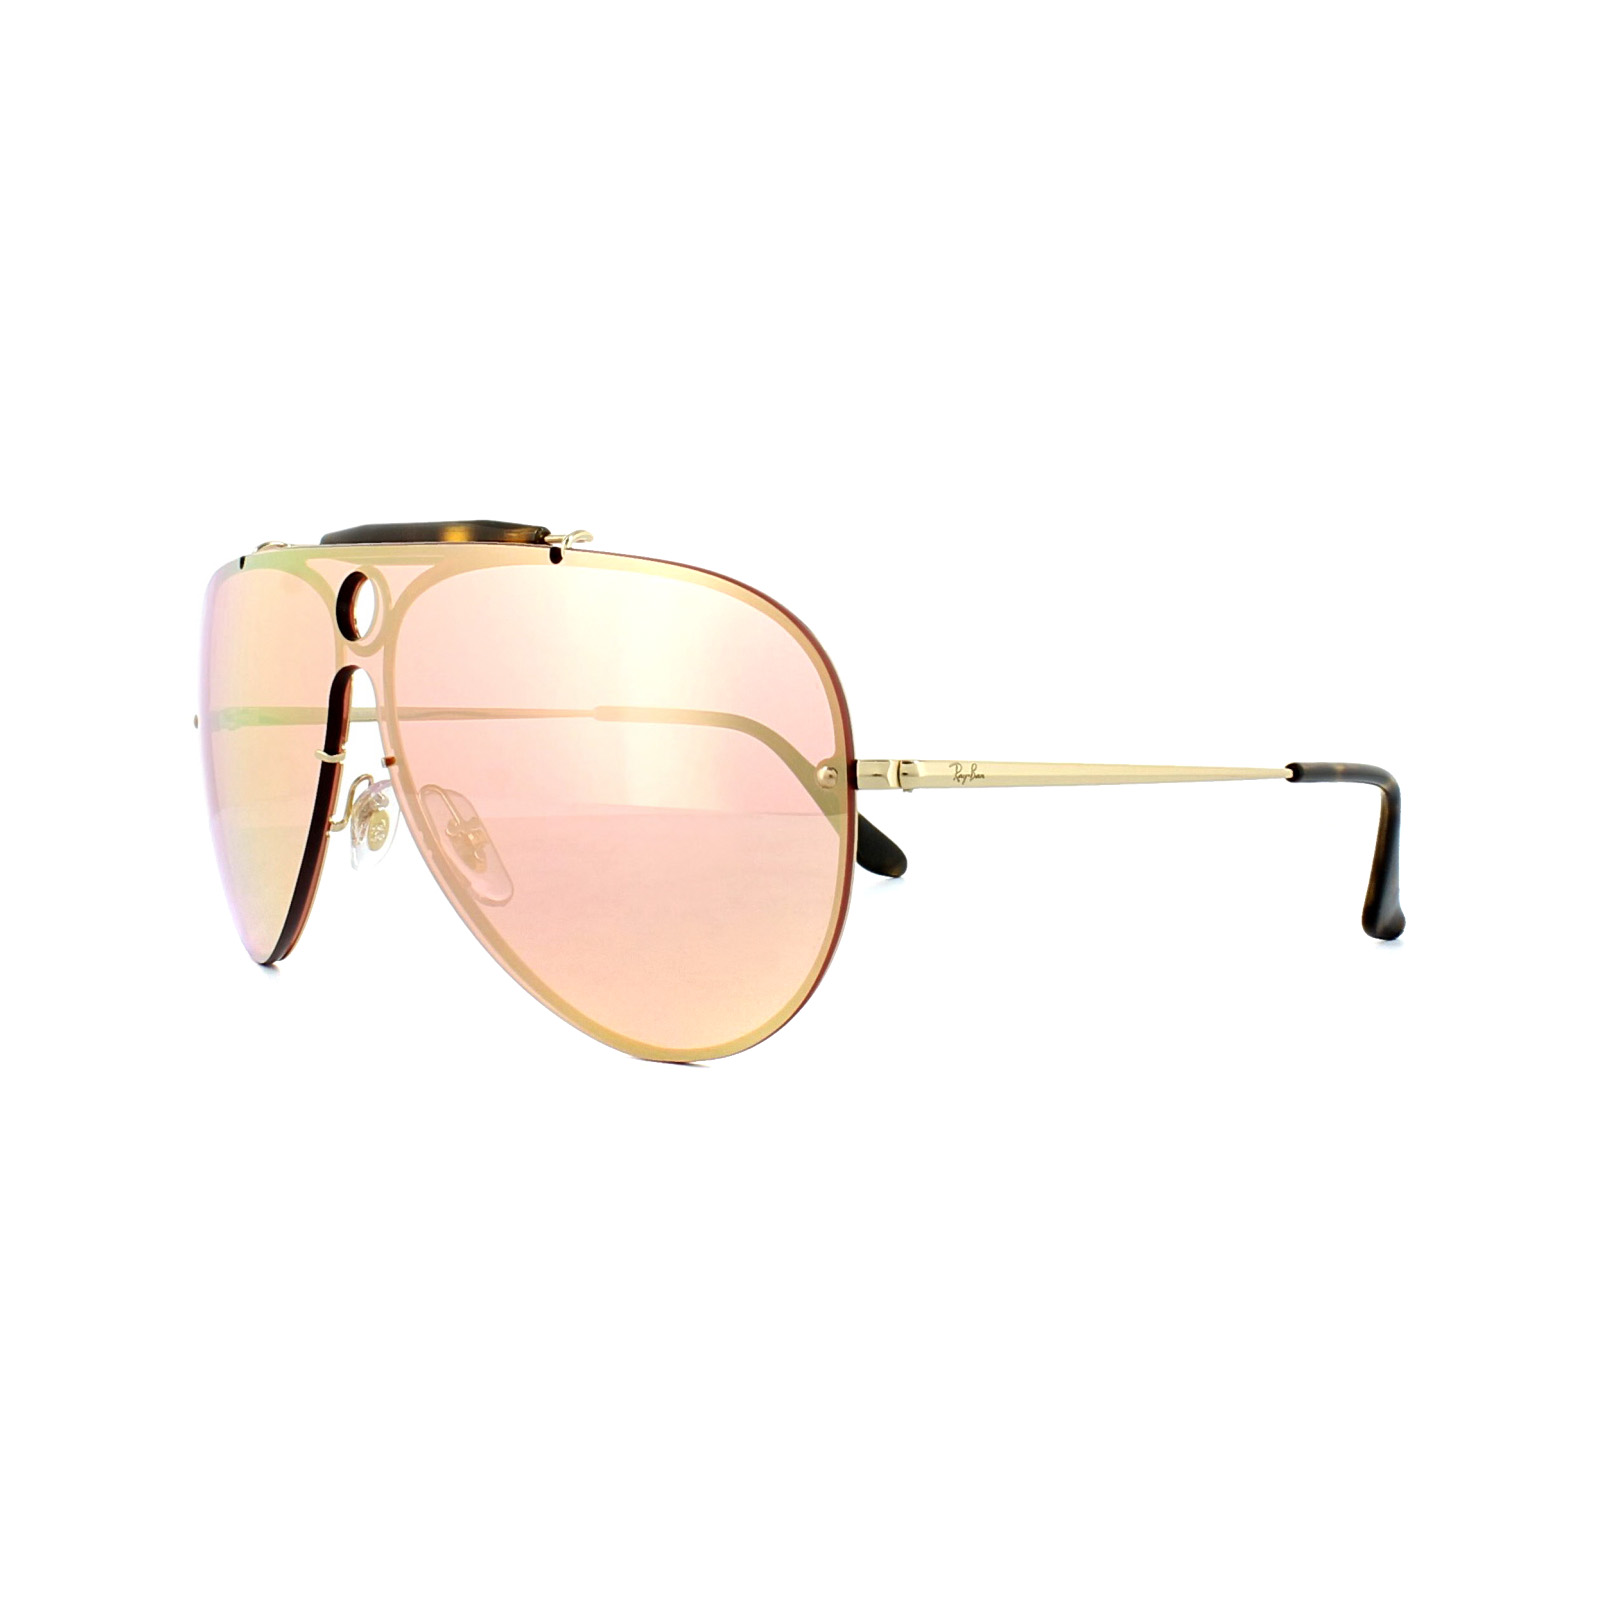 411884230b548 Sentinel Ray-Ban Sunglasses Blaze Shooter 3581N 001 E4 Gold Pink Mirror